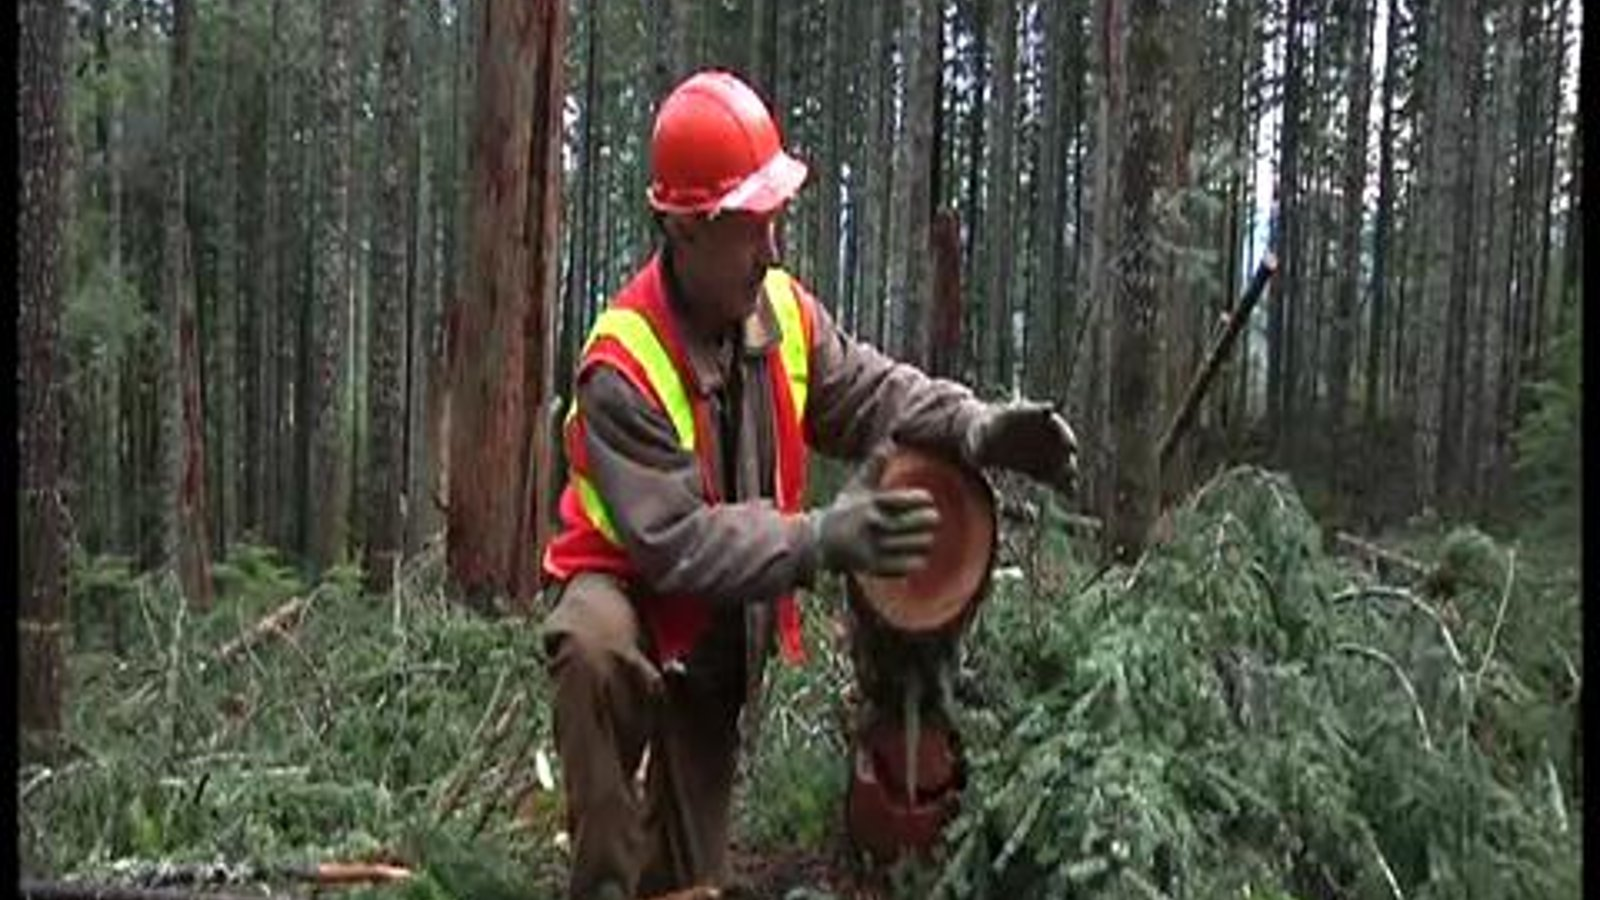 The Green Economy: Sustainable Forestry